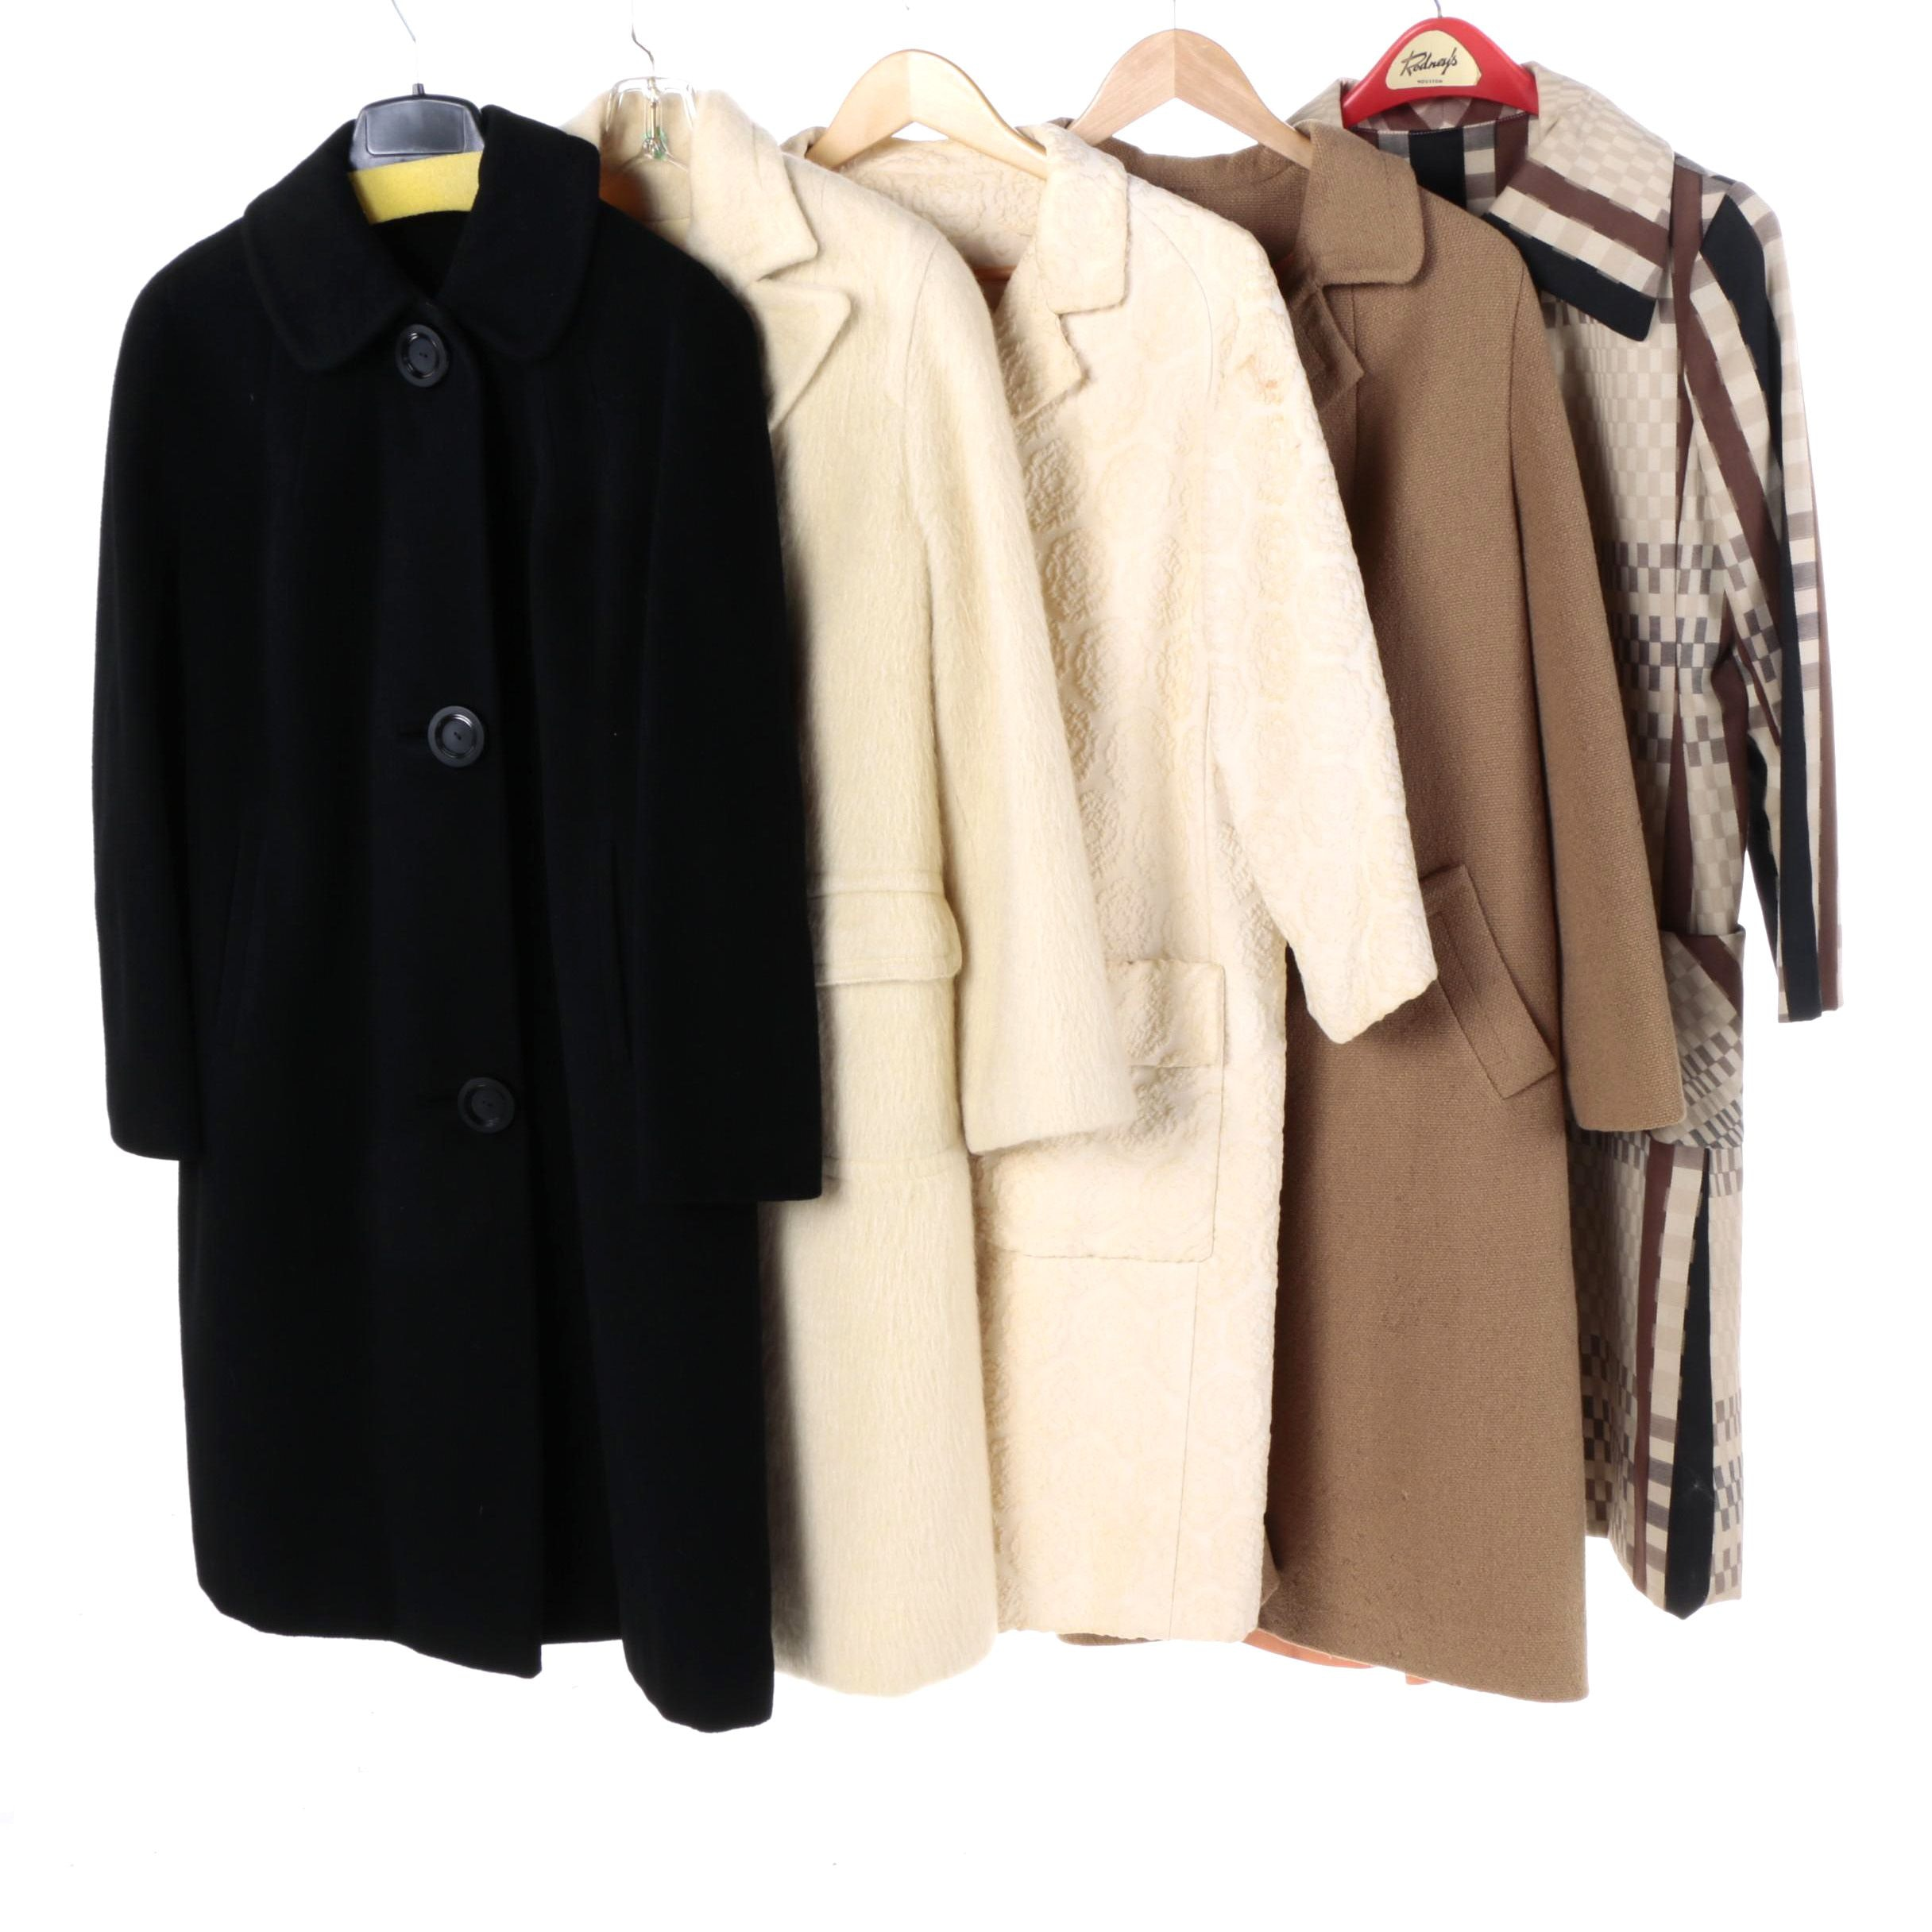 Vintage Mid Century Cashmere, Wool, and Brocade Coats